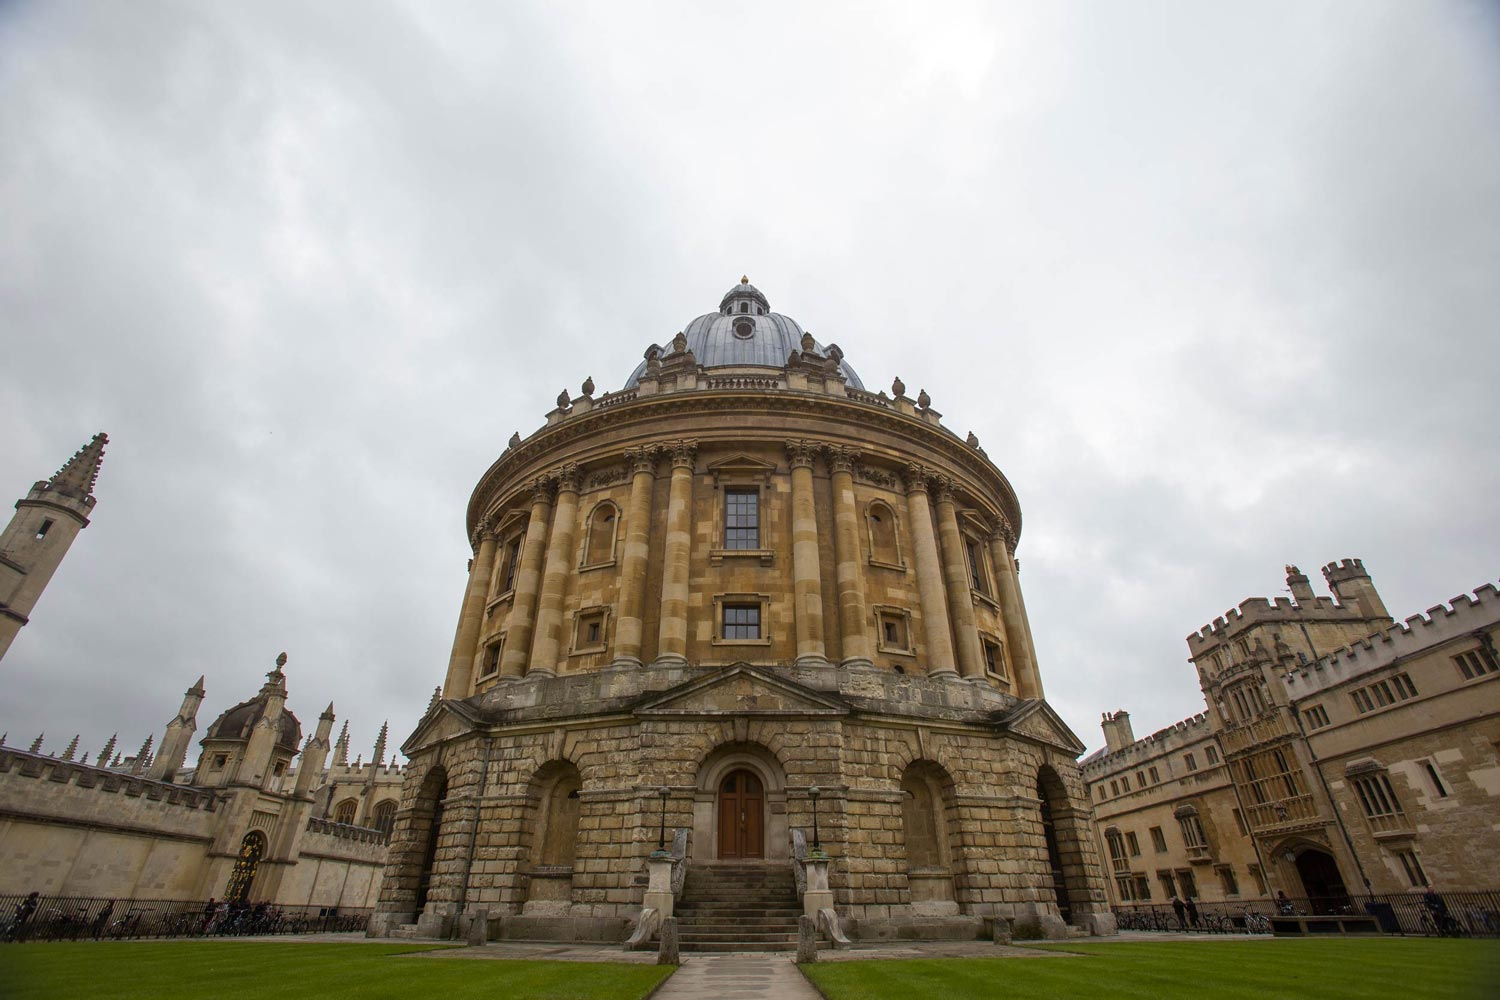 Cox said she spends a lot of time in Oxford's famous Radcliffe Camera, which functions as the main reading room of the university's Bodelian Library.